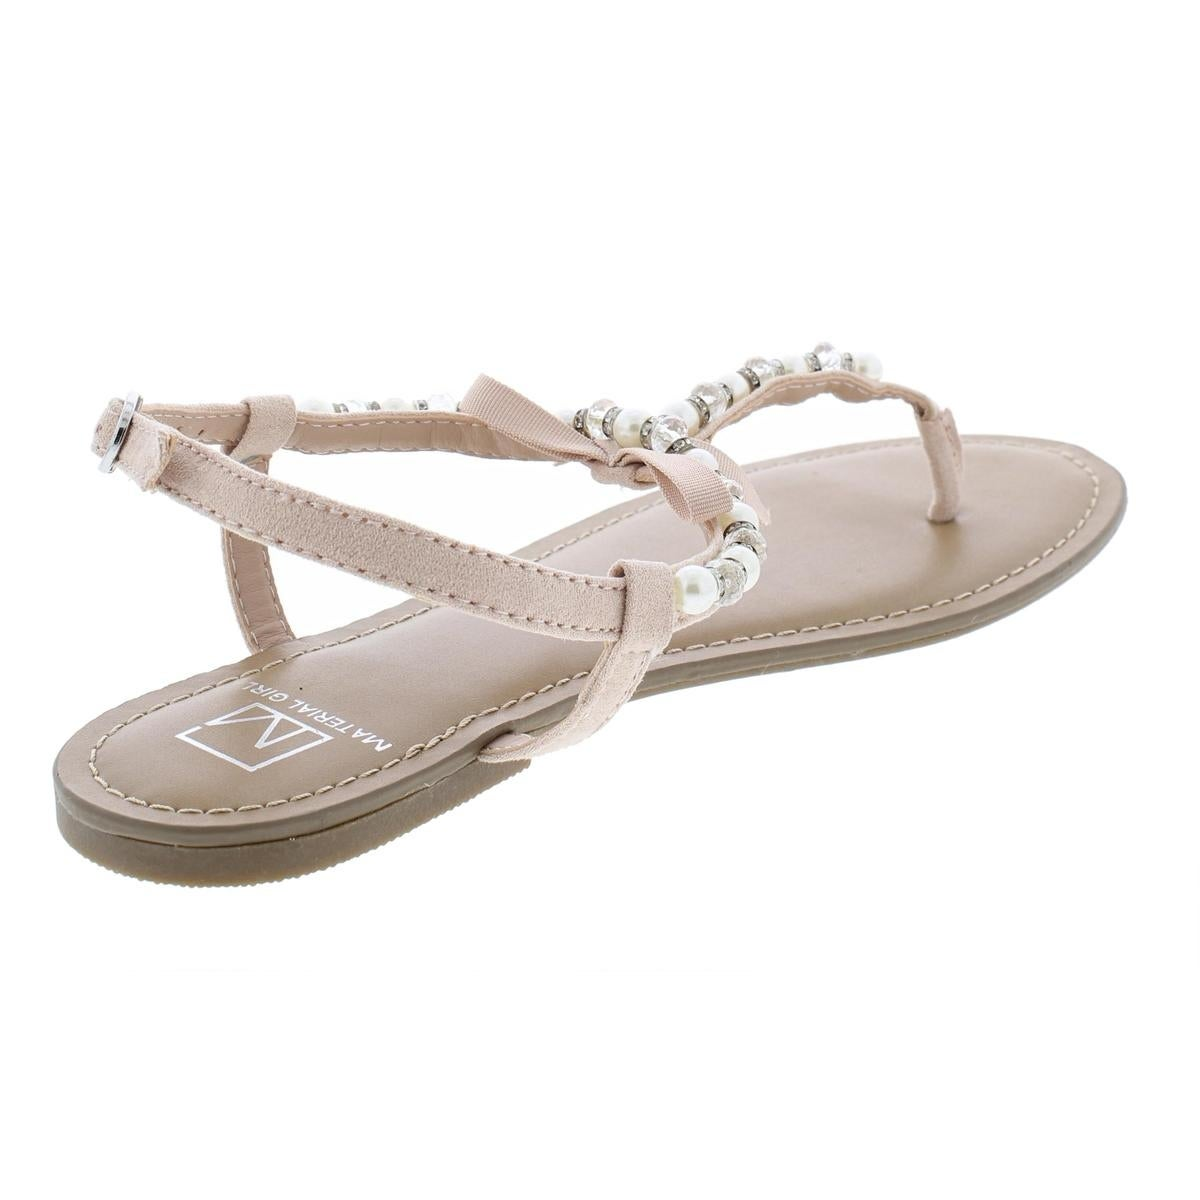 5eccc8343f3 Shop Material Girl Womens Perlie Flat Sandals Faux Leather T-Strap - 6.5  medium (b